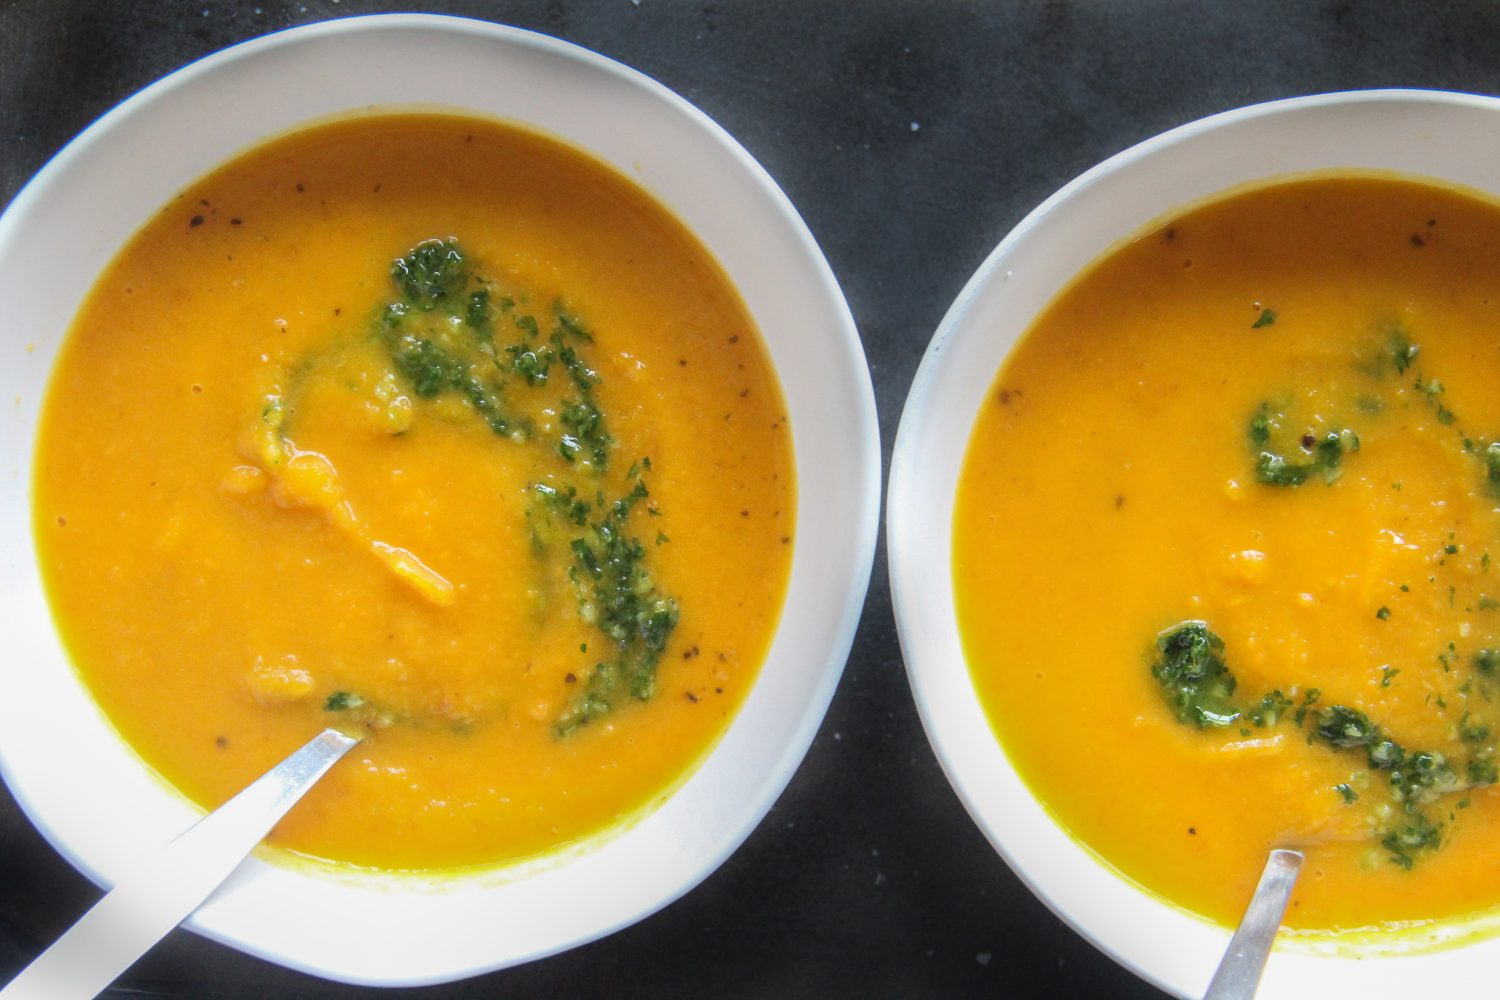 Roasted Carrot and Pumpkin Soup with Parsley Pesto